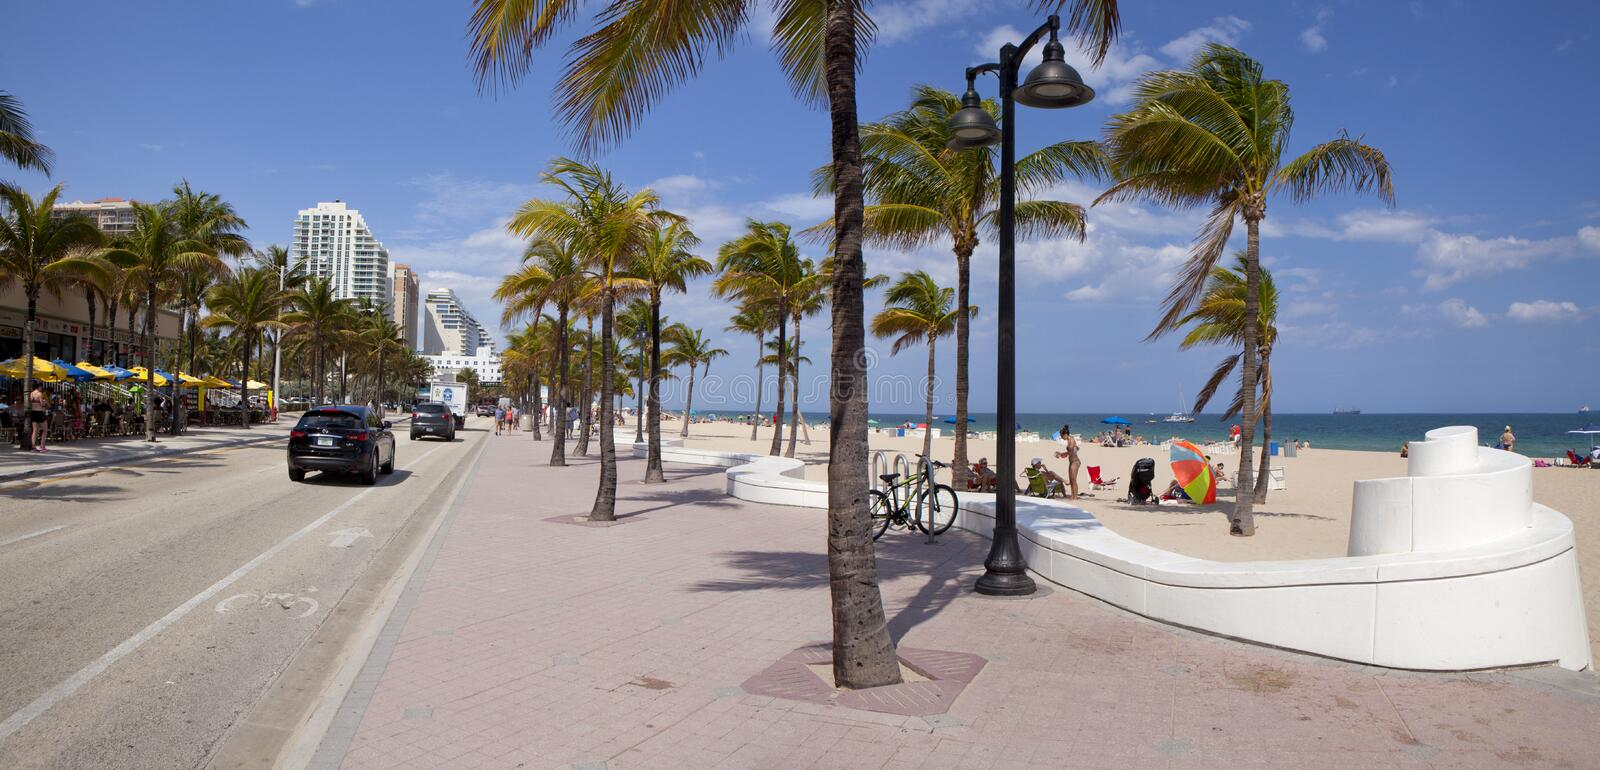 Fort Lauderdale Florida (panoramic). Wide angle view of Fort Lauderdale beach.n2 pictures were used to make this larger, wide angle view royalty free stock photo